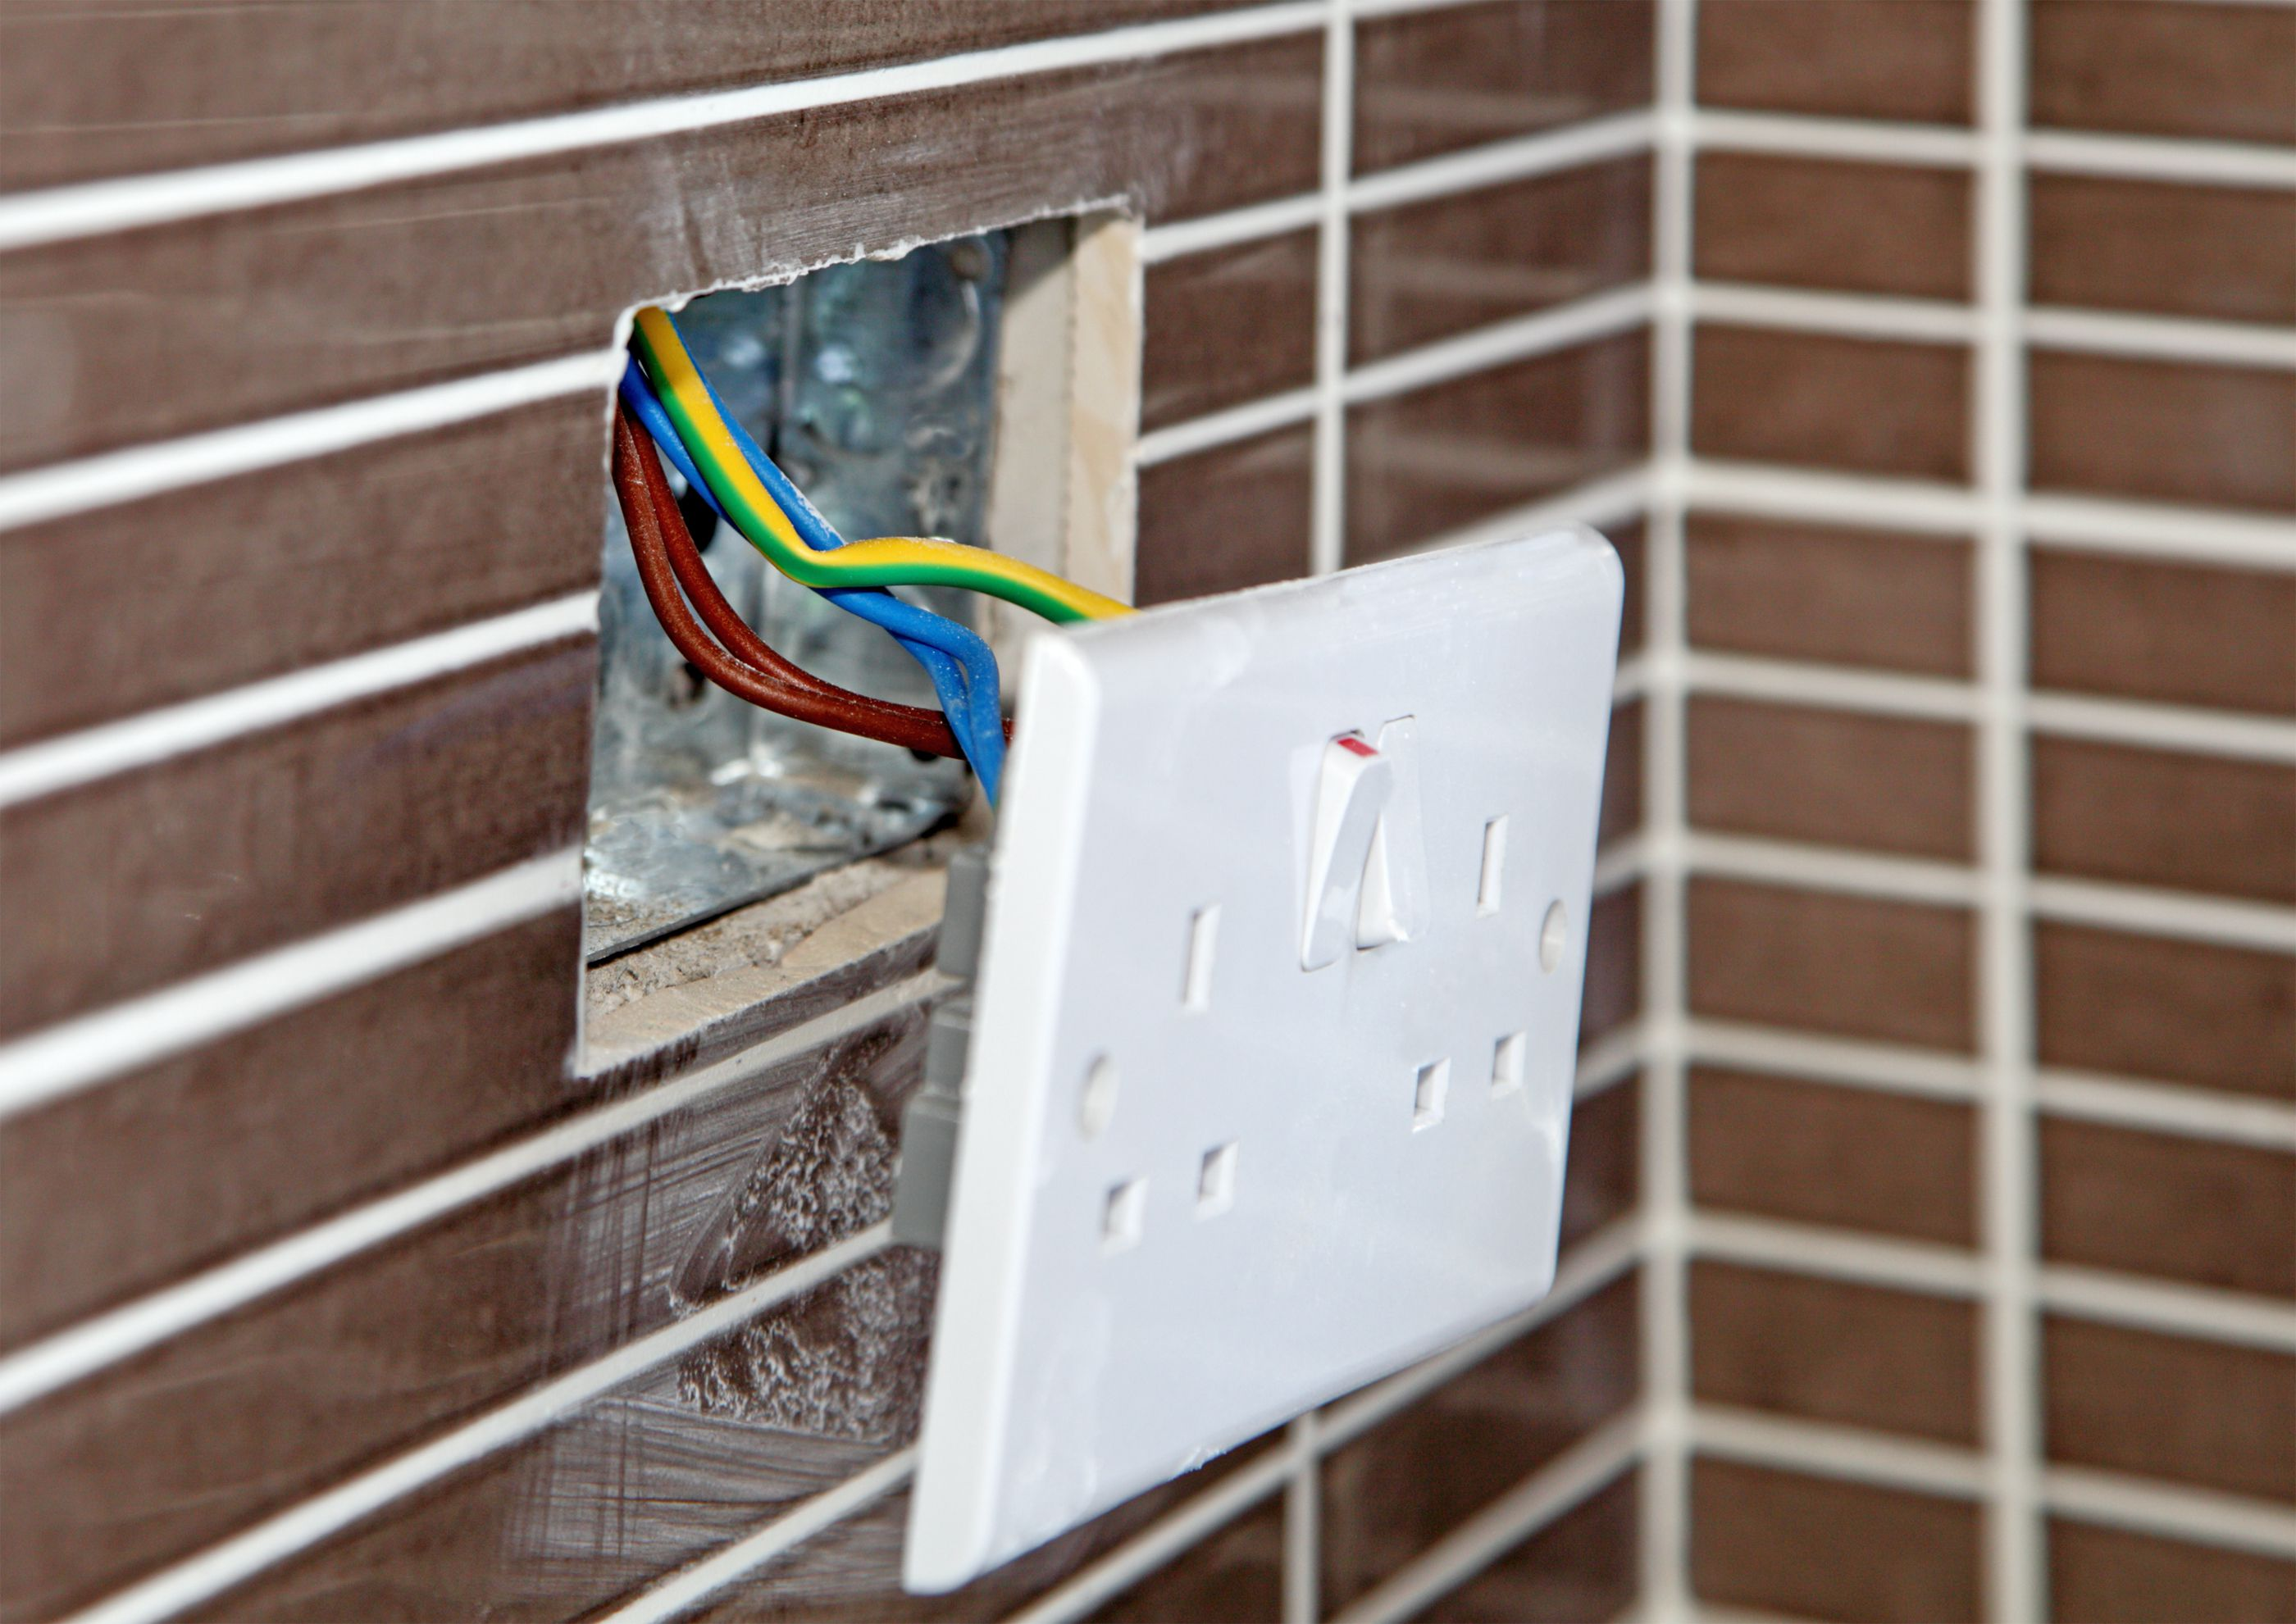 Installing An Old Work Retrofit Electrical Box In A Wall